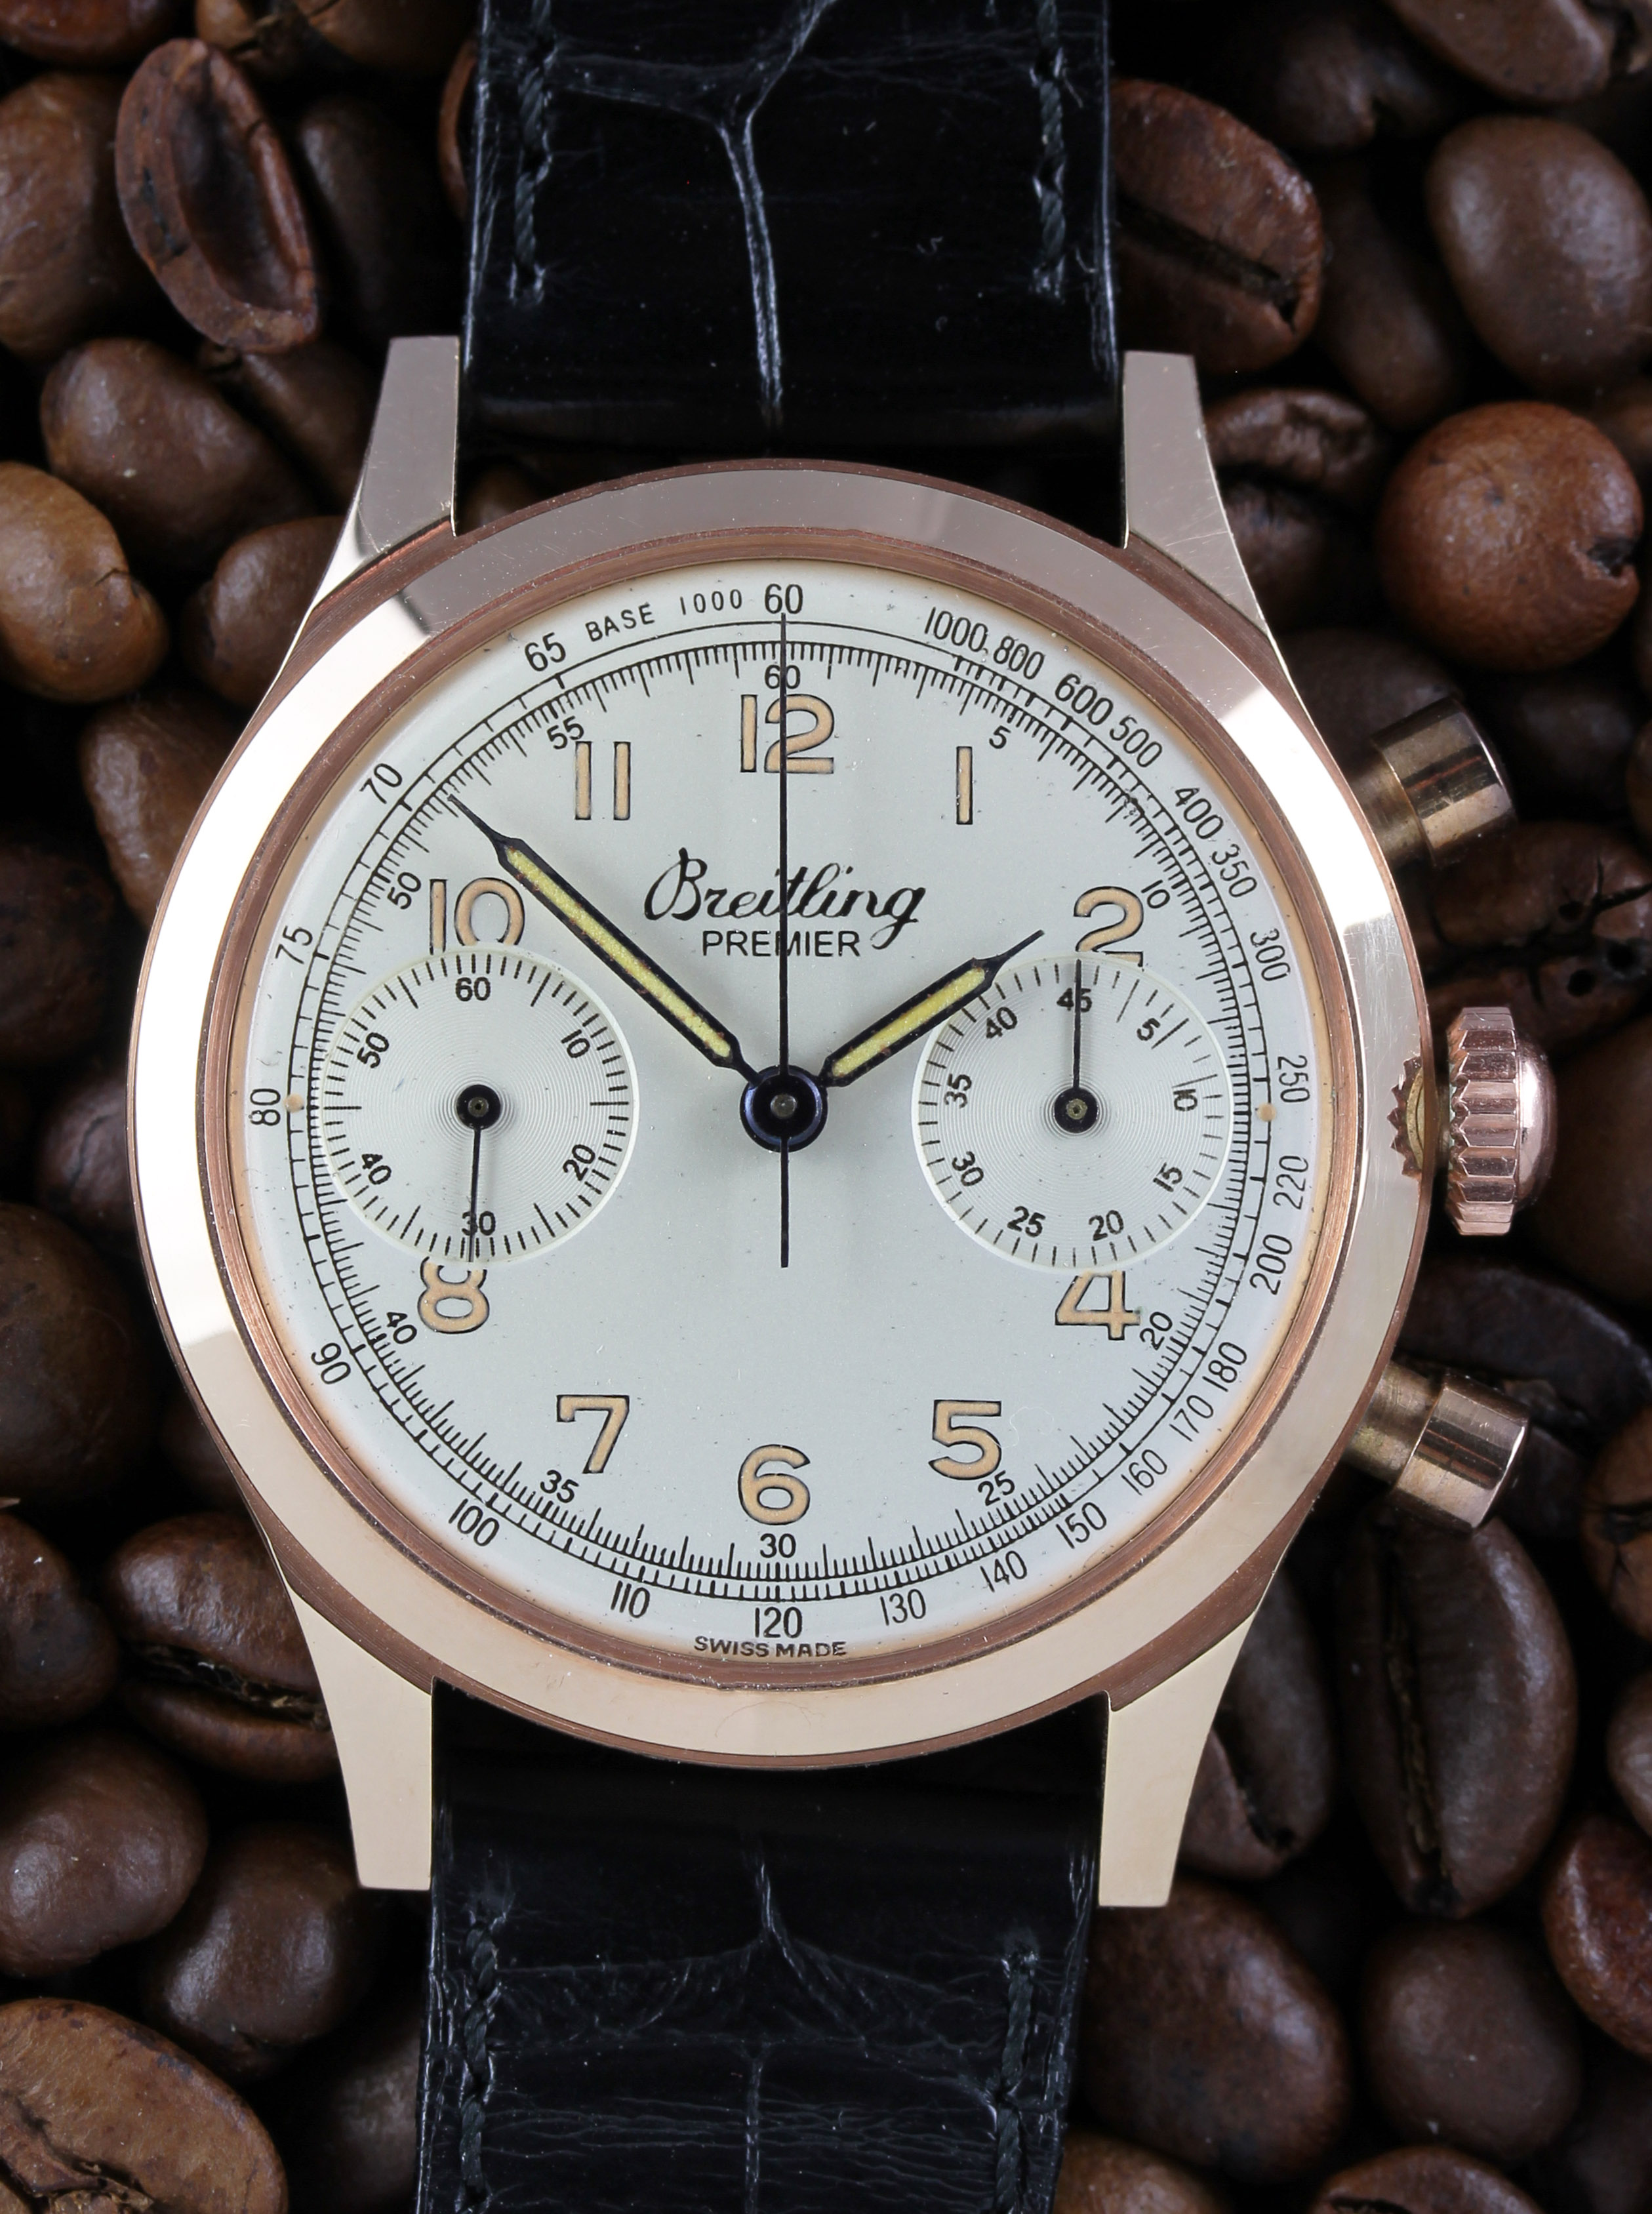 BREITLING chronograph Premier in pink gold